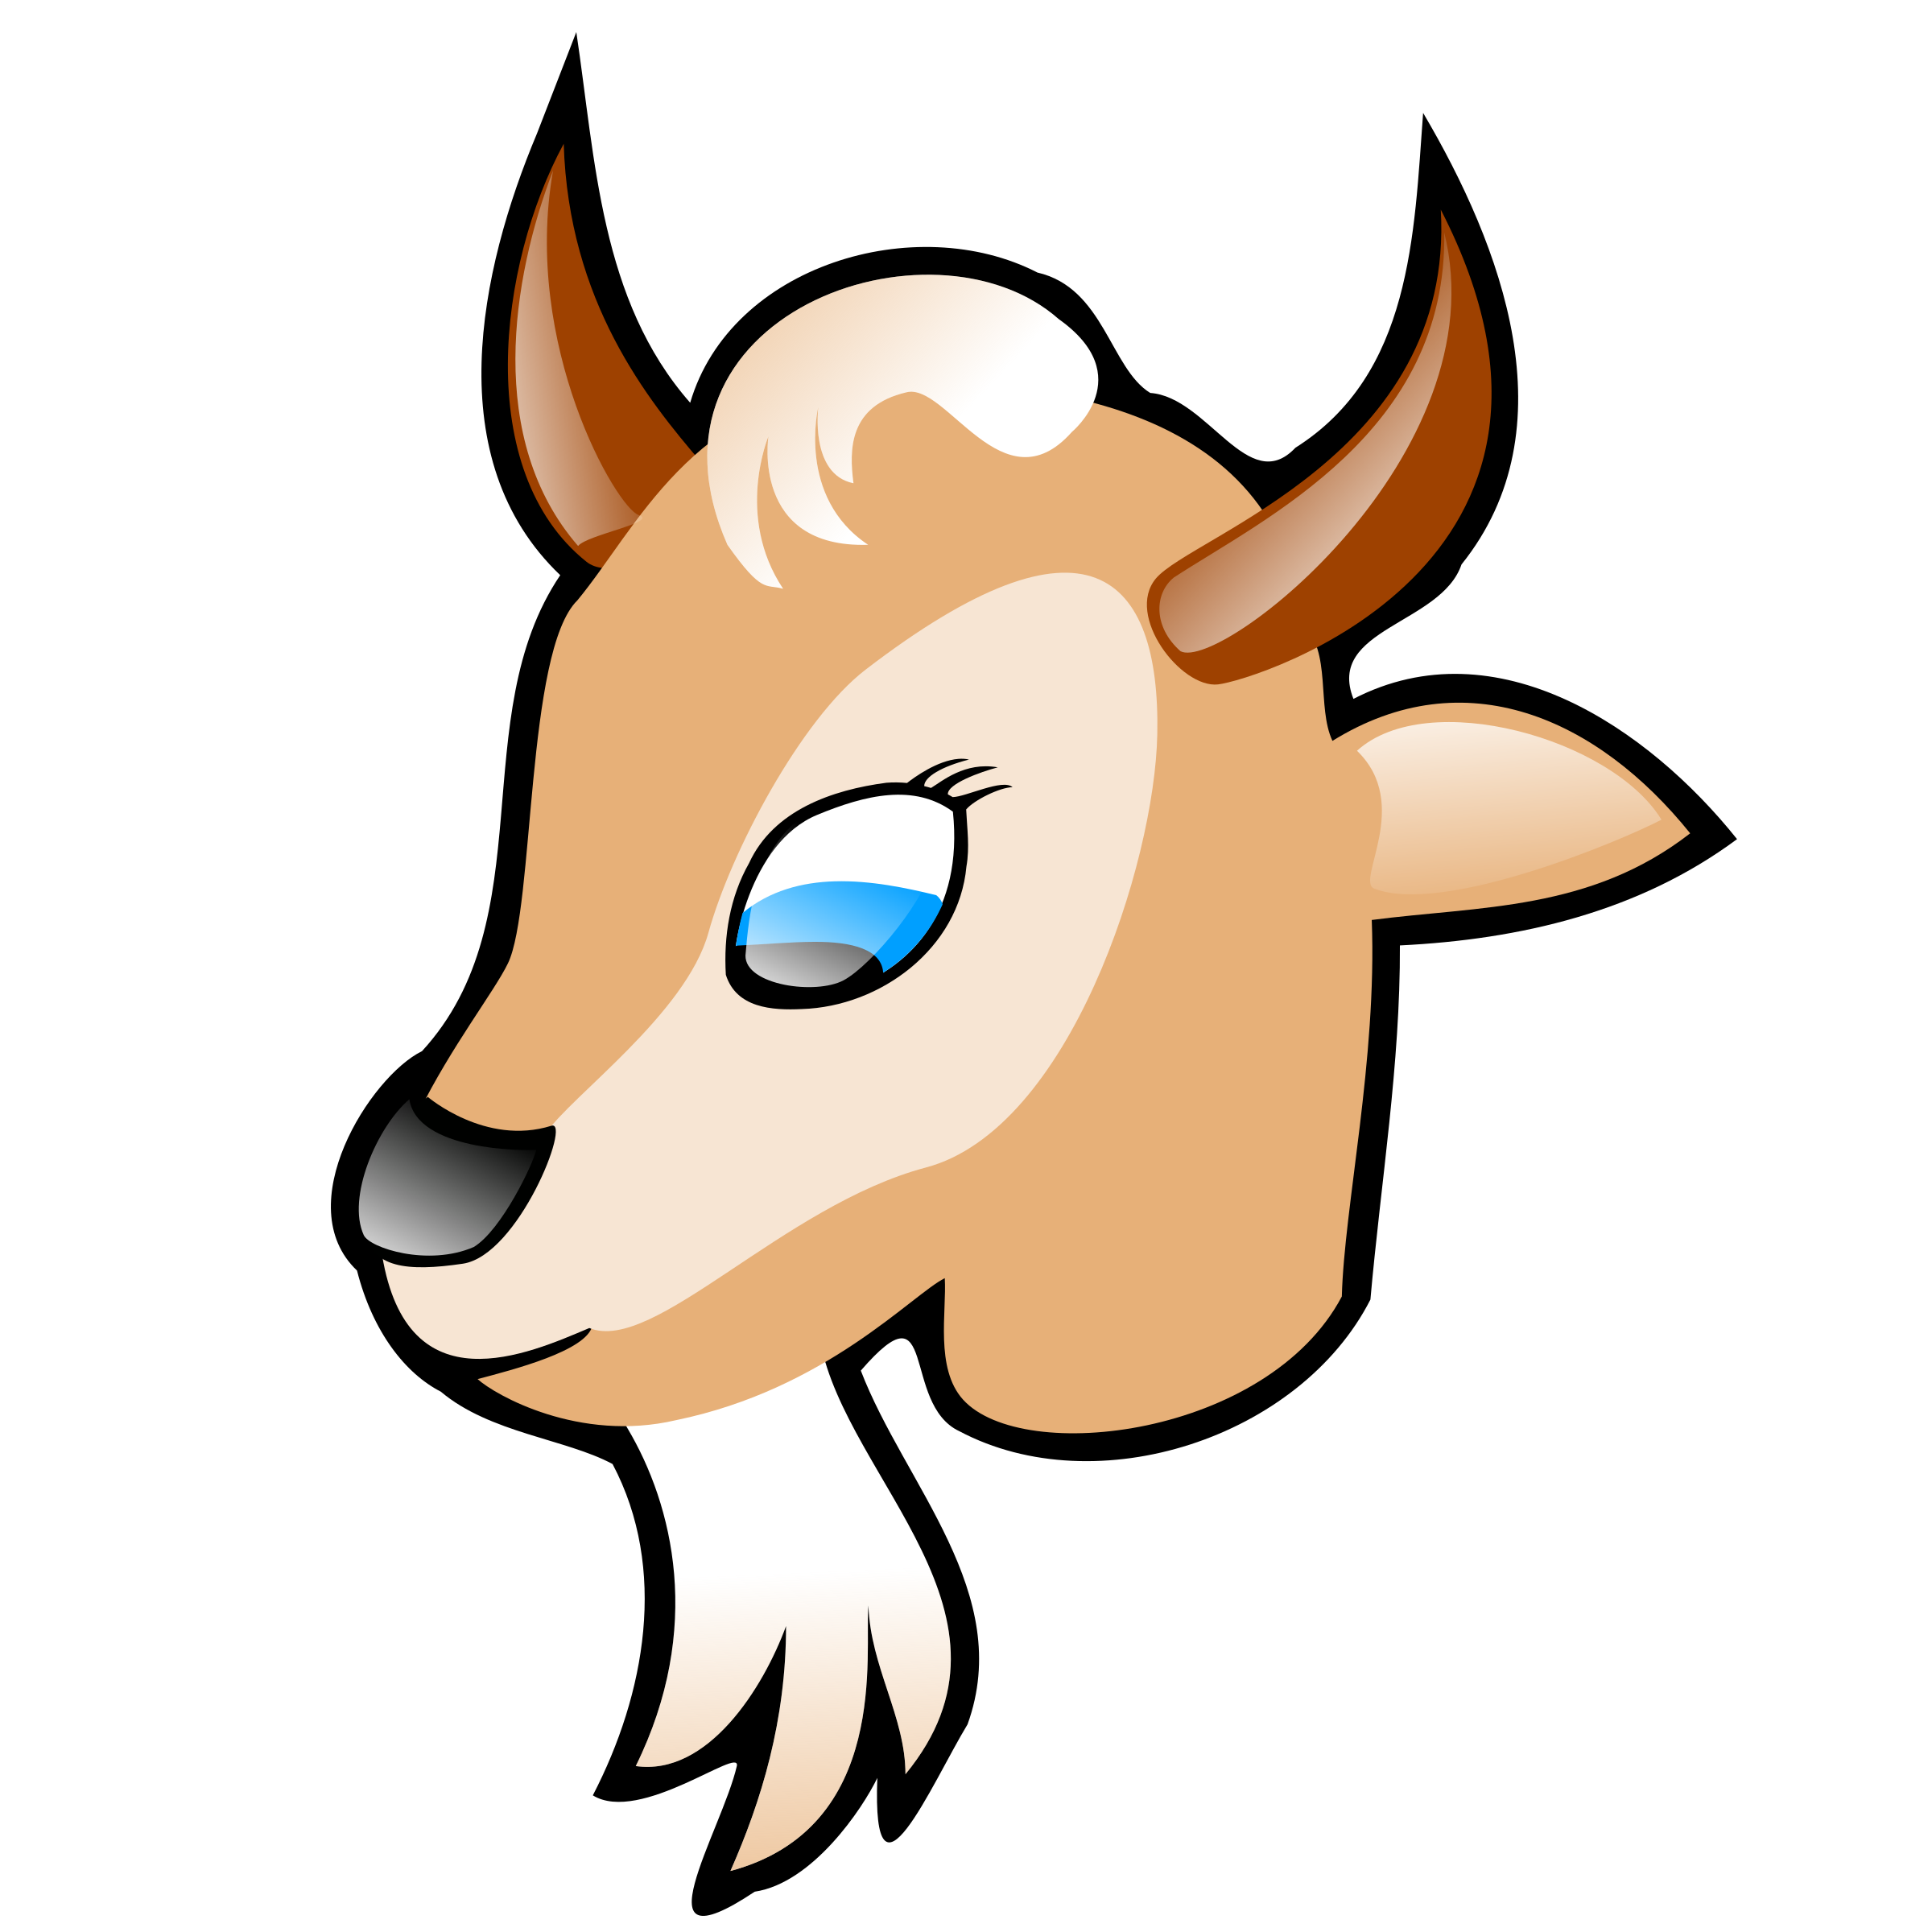 Goat head by nicubunu